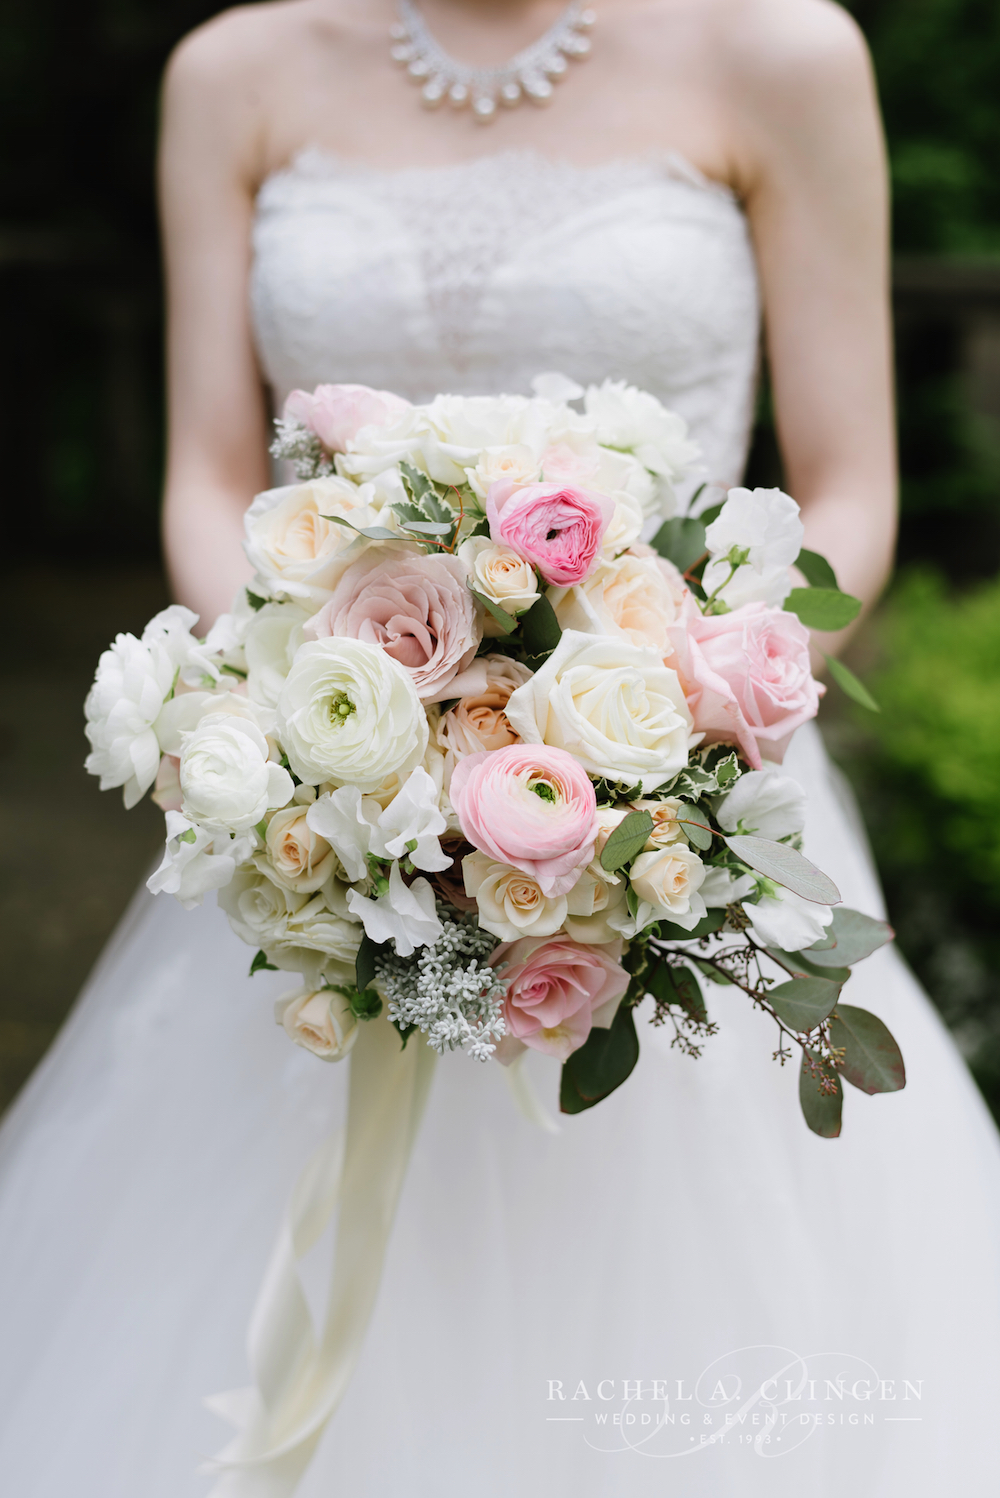 rachel-a-clingen-wedding-flowers